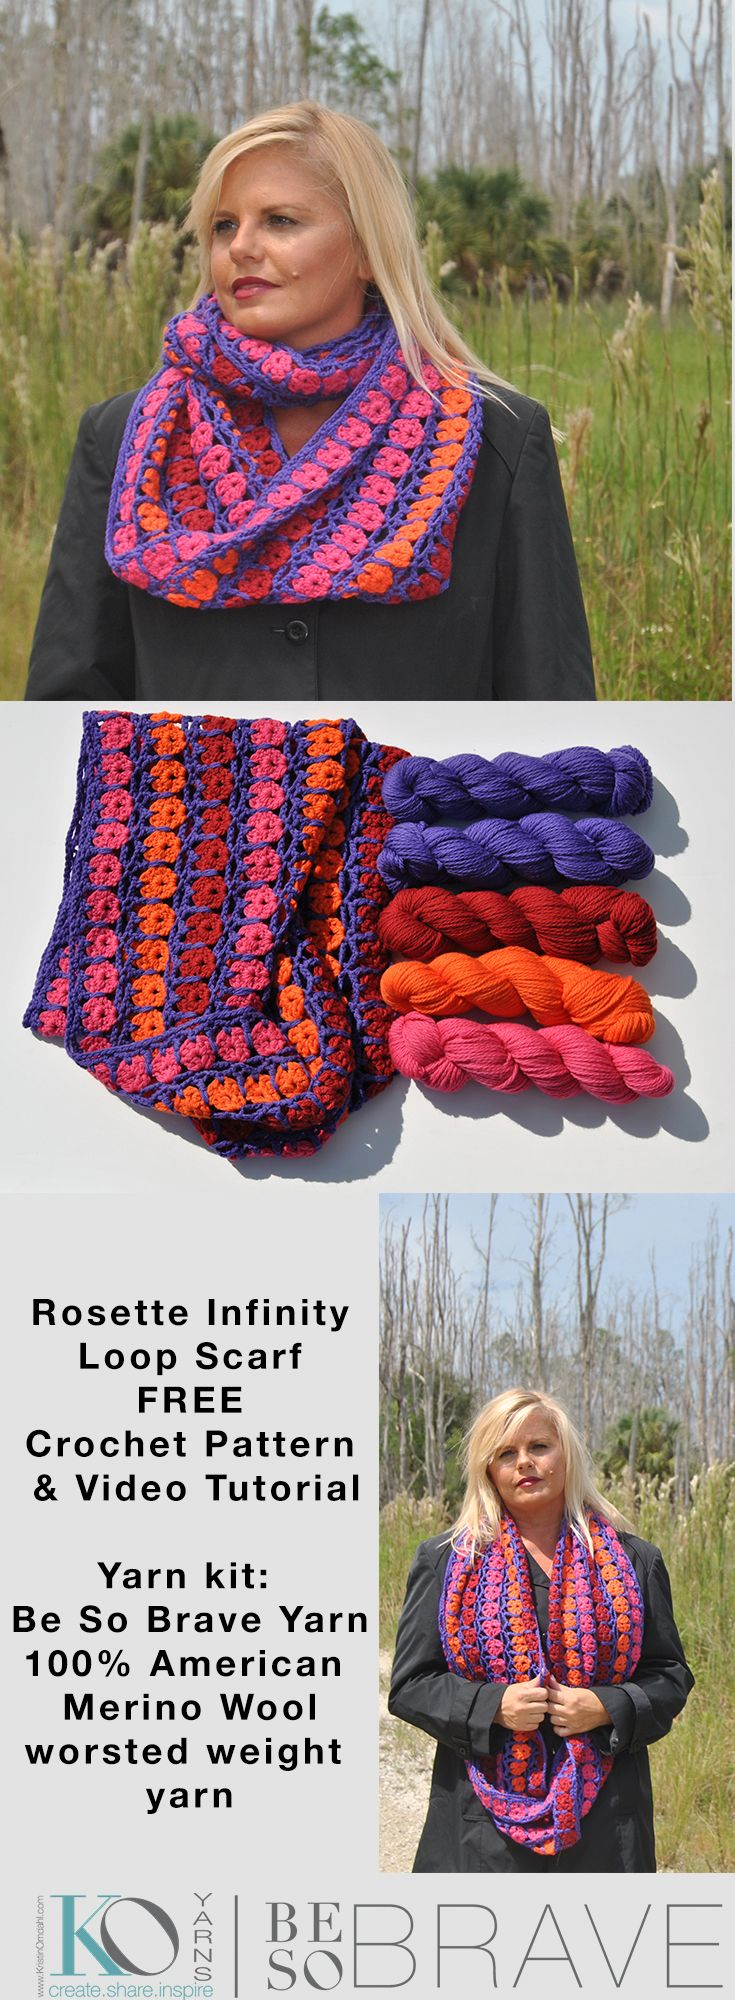 Oct 18 Be So Brave yarn Crochet Rosette Infinity Loop Scarf FREE ...